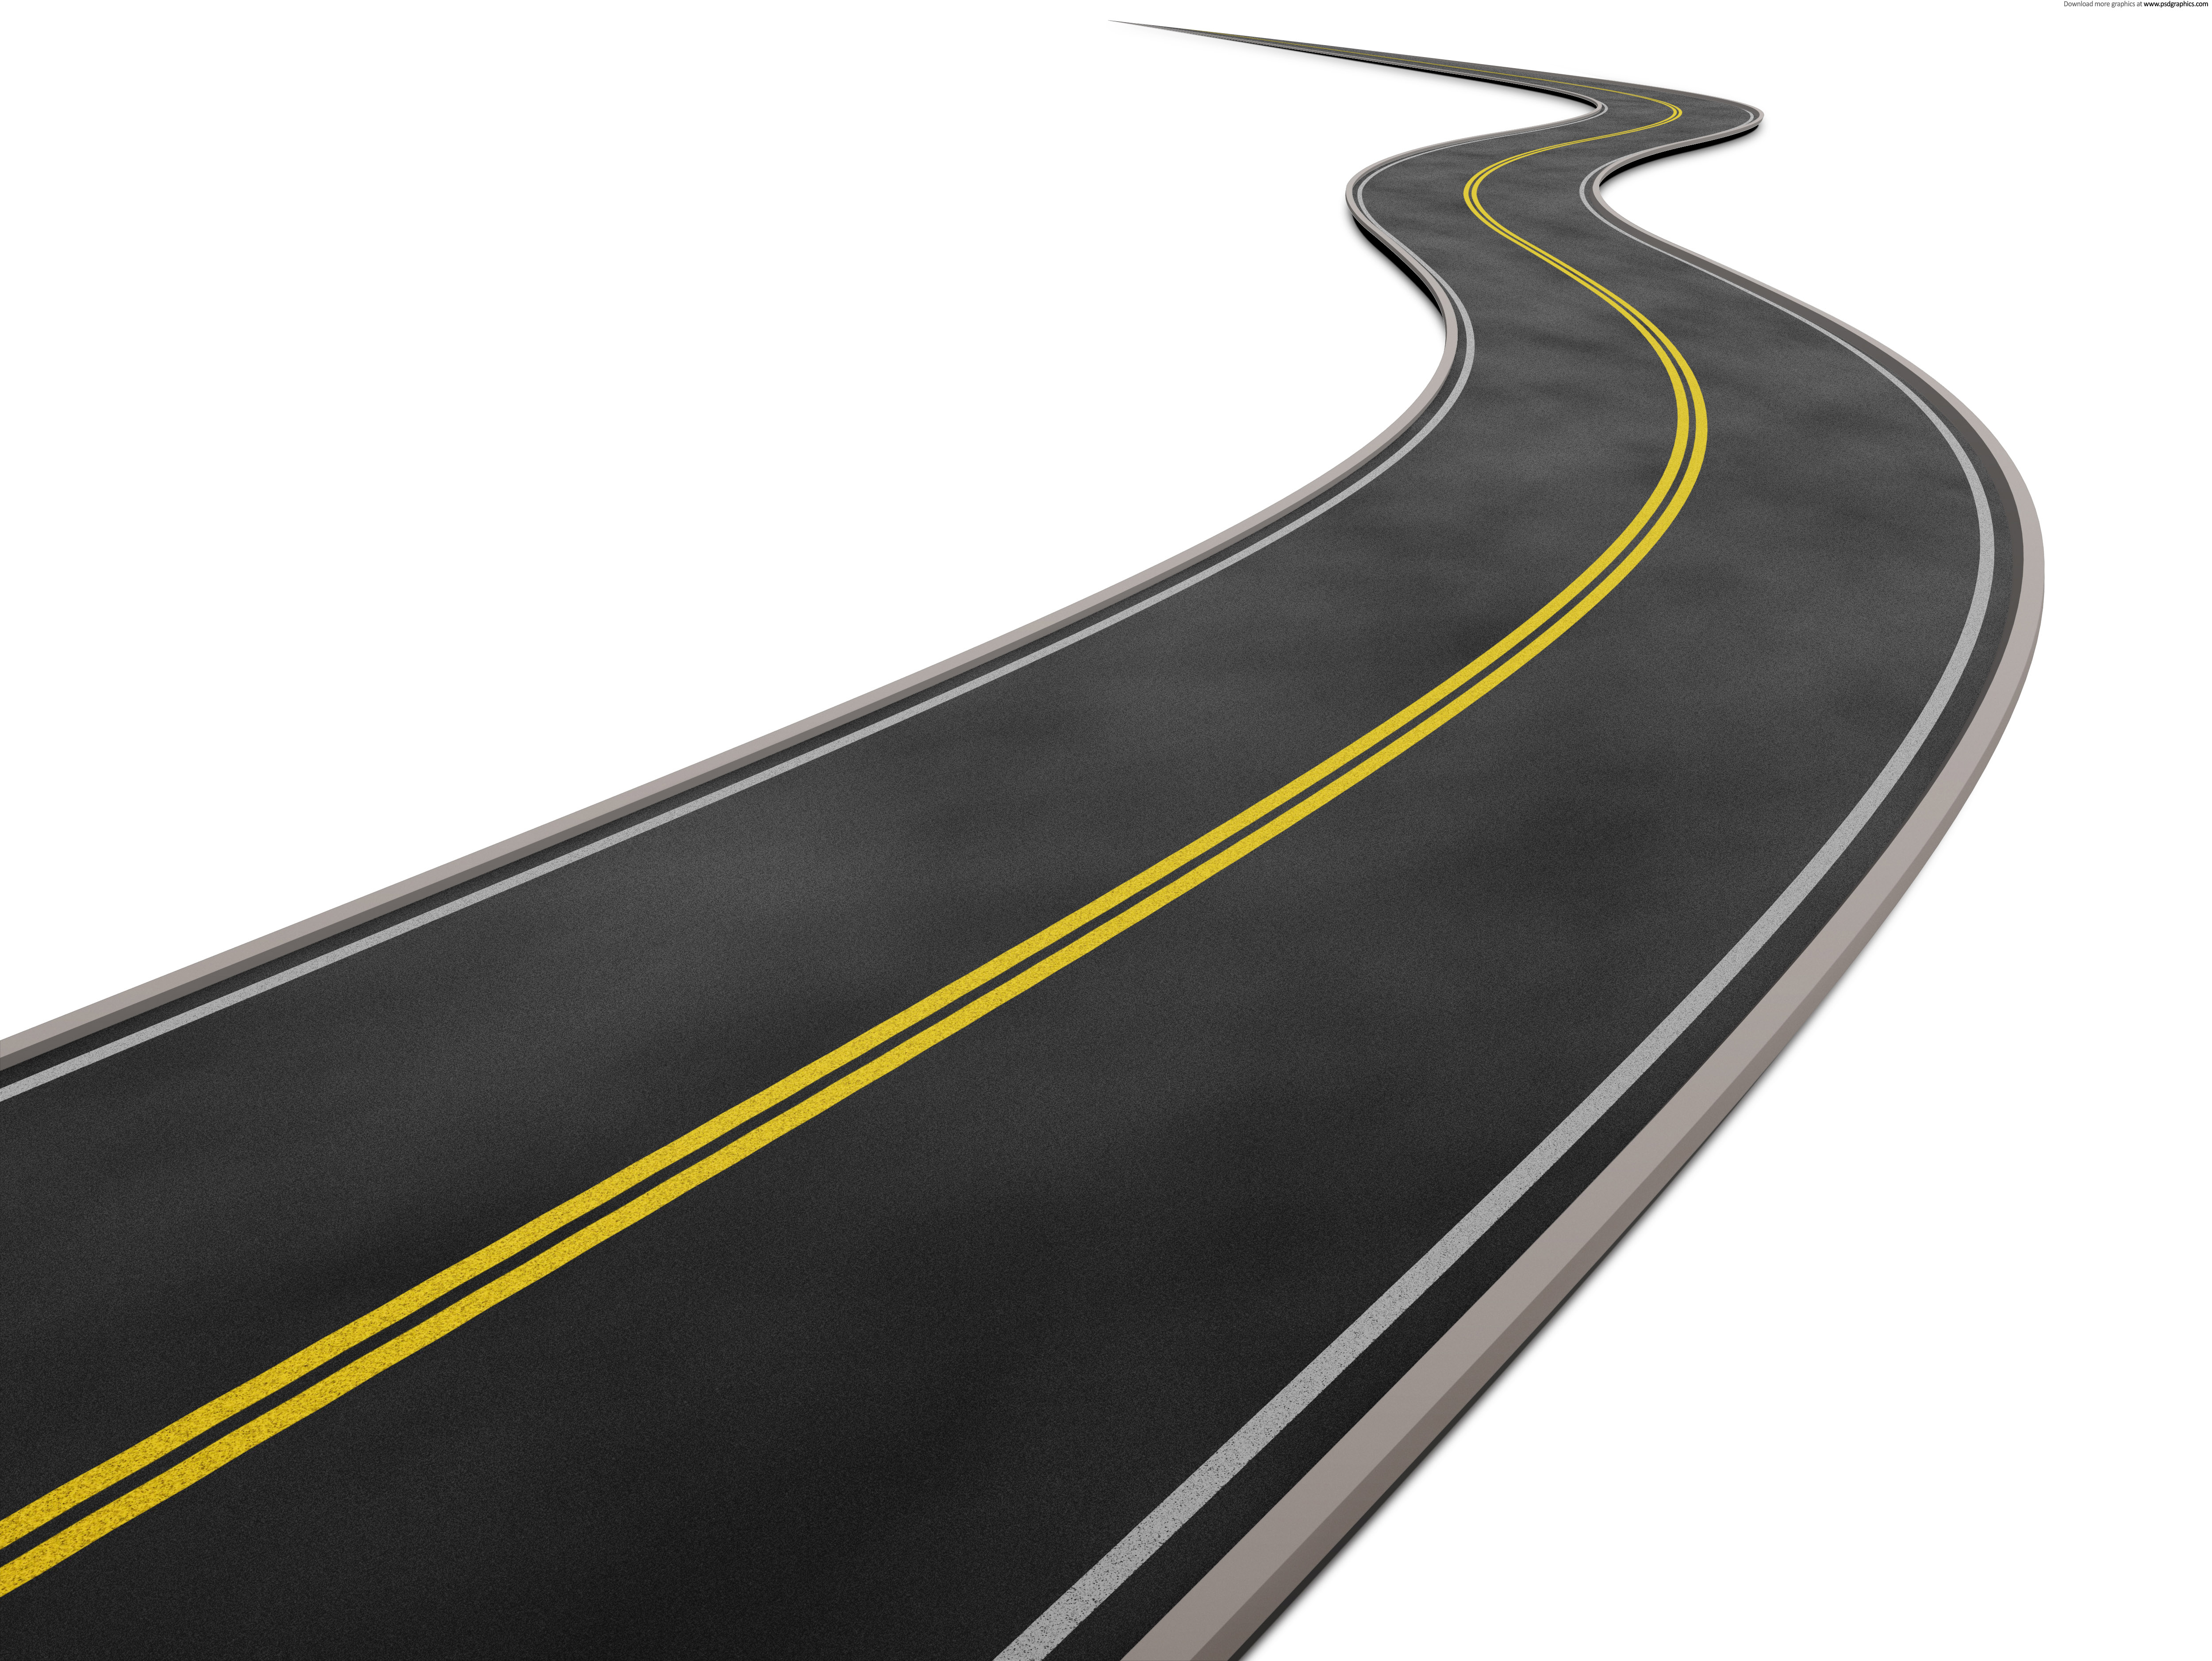 Curved road on white background